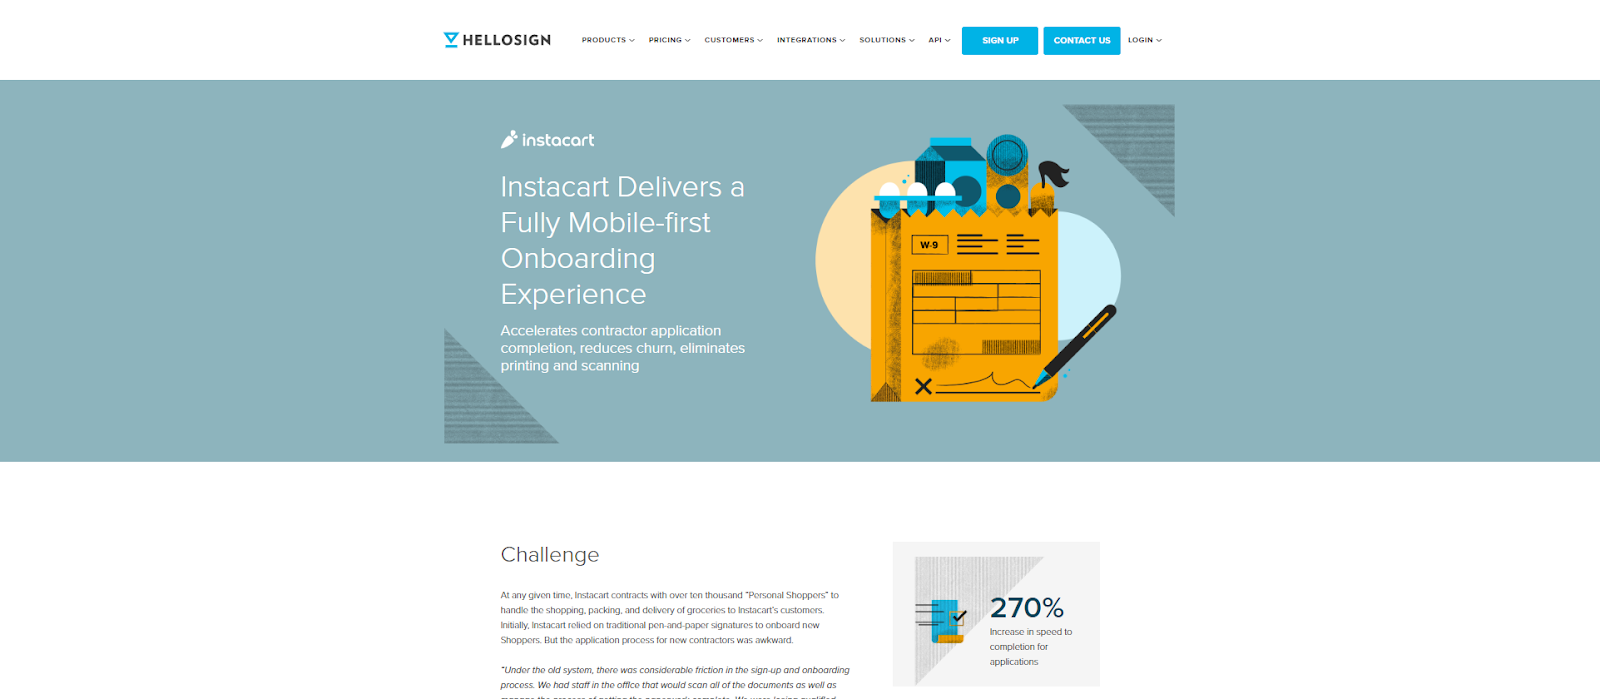 HelloSign's case studies were critical for driving conversions throughout the funnel.